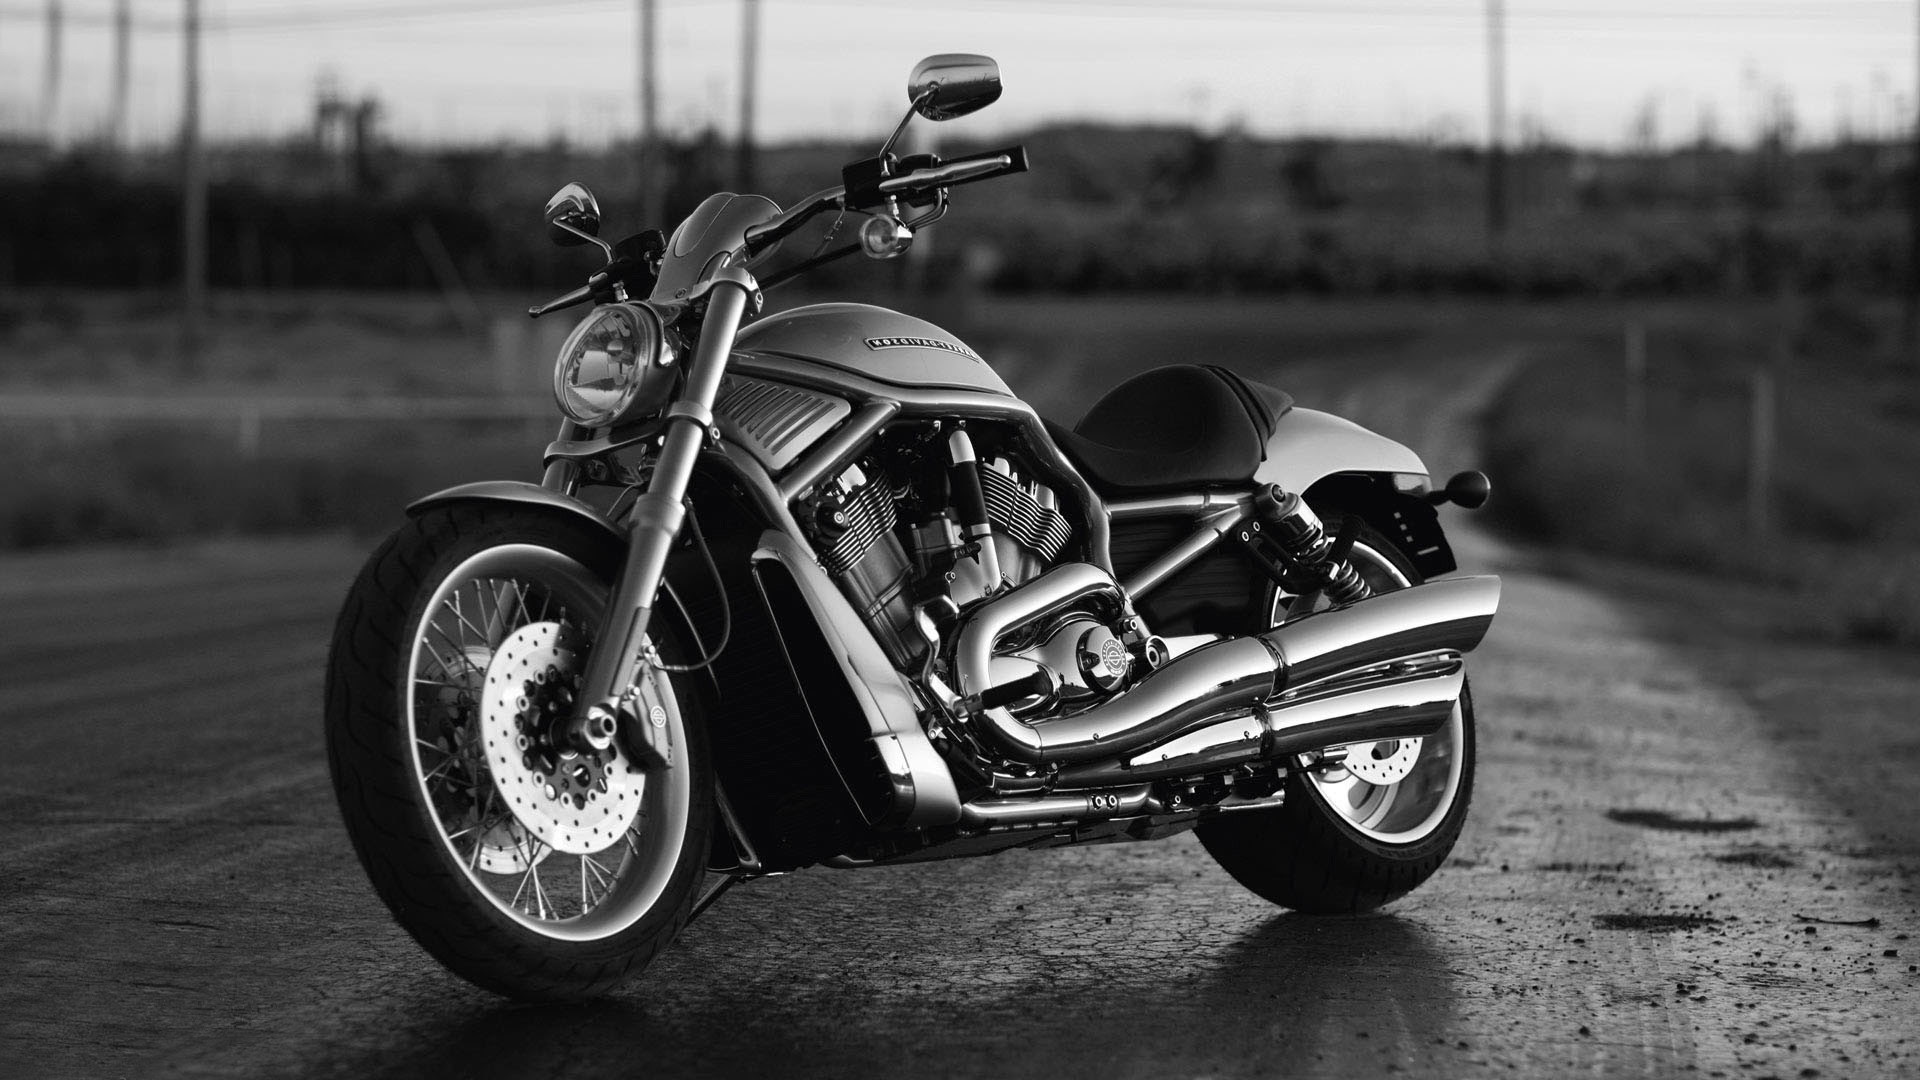 Harley Davidson Pics Wallpapers 67 Images